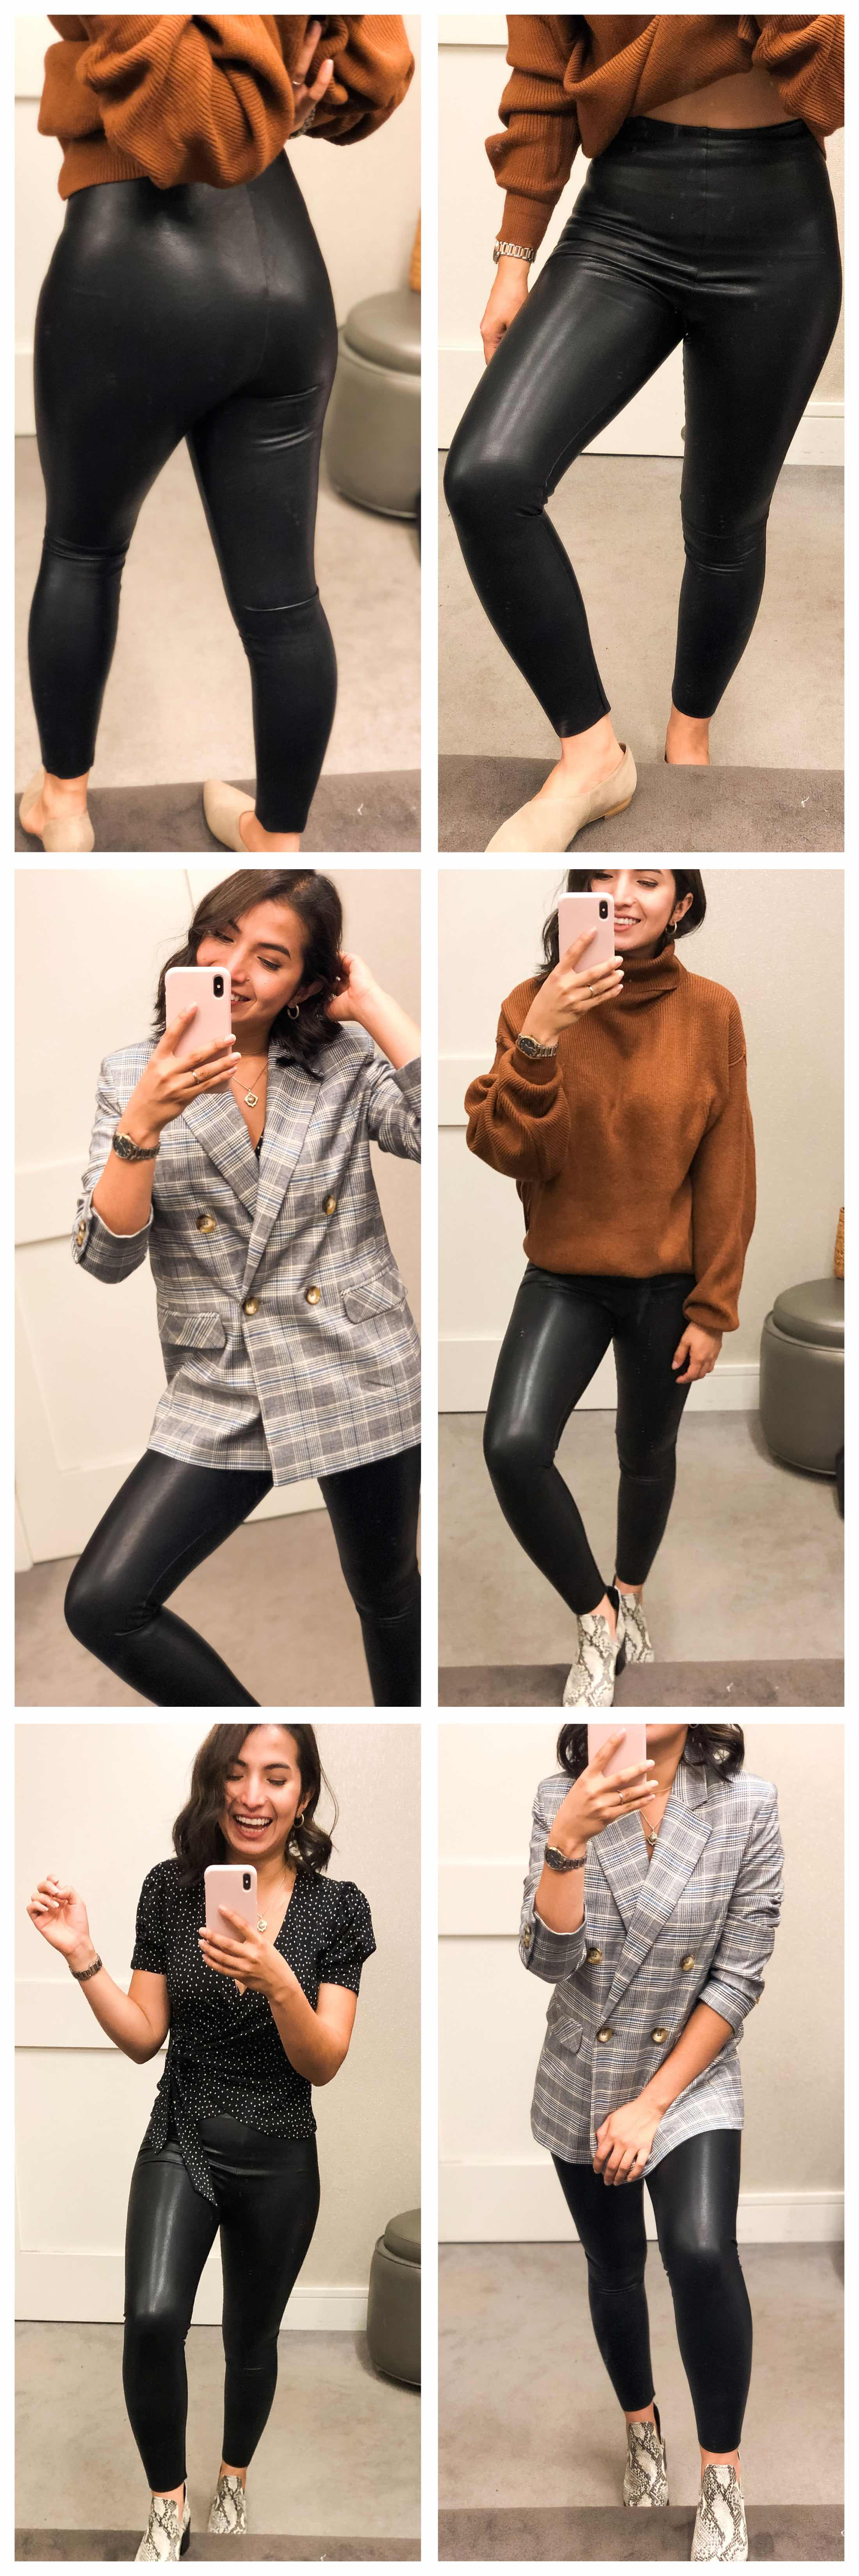 These Commando faux leather leggings for fall & winter might just replace those Spanx. The Anni Sale previews how to wear 'em this season.